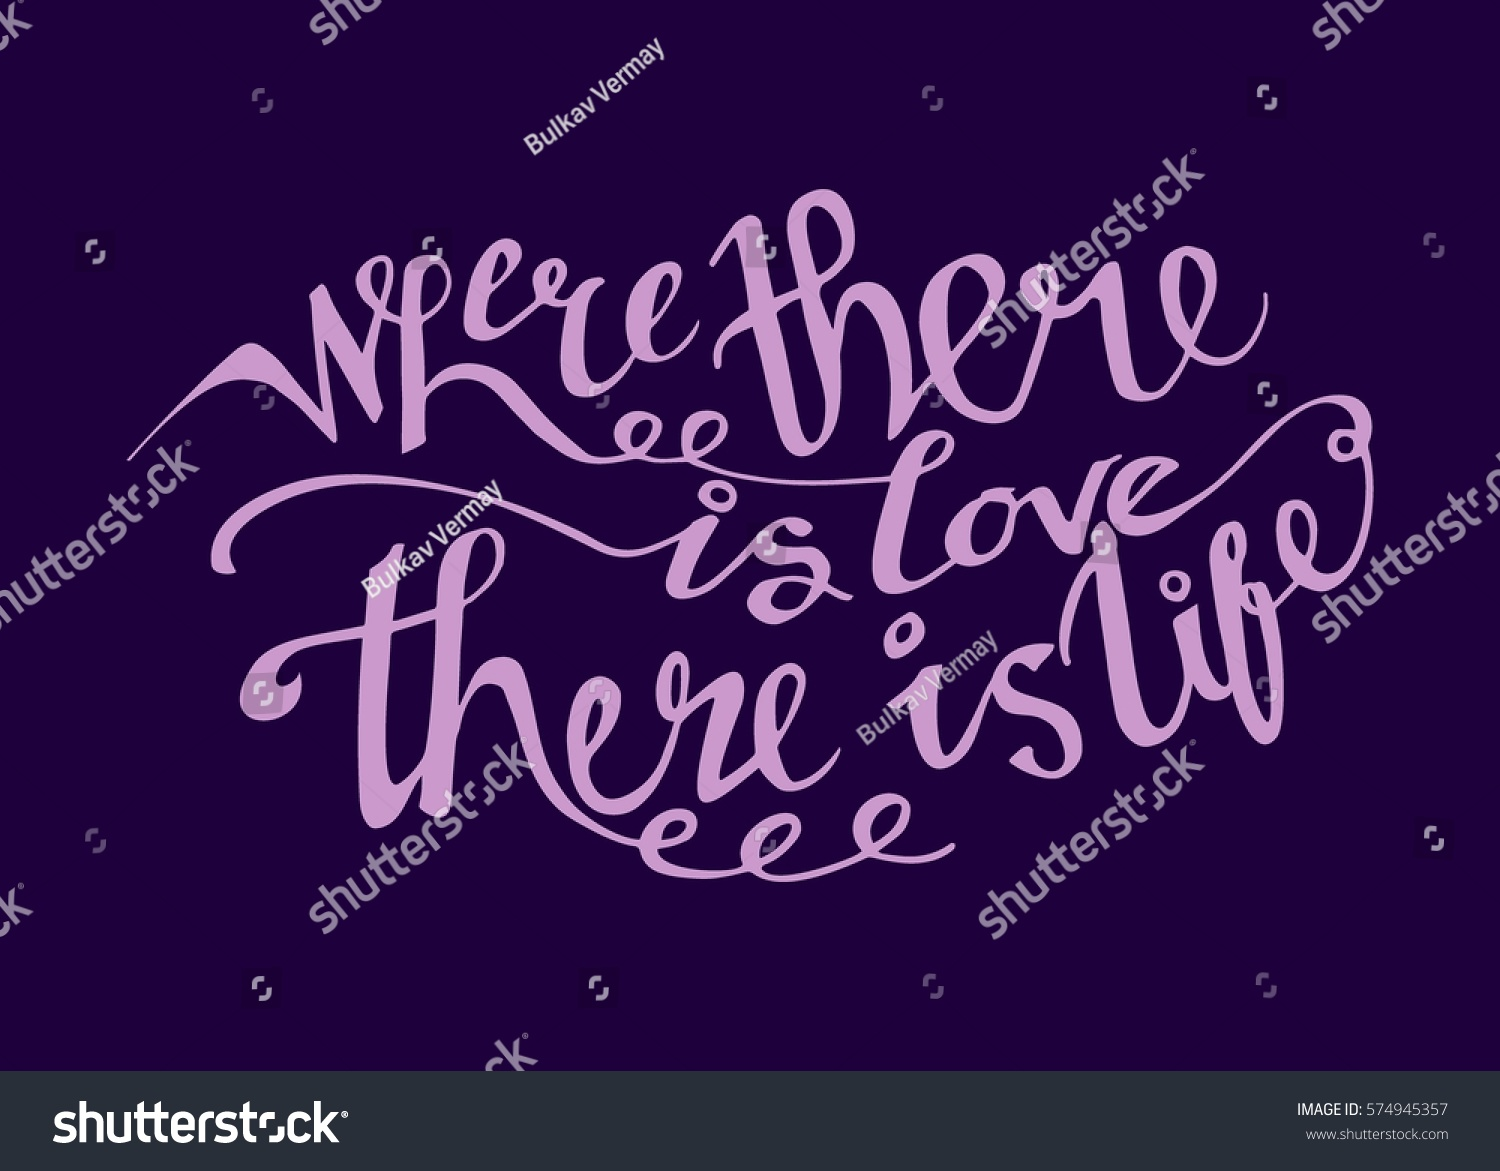 Where there love life hand stock vector